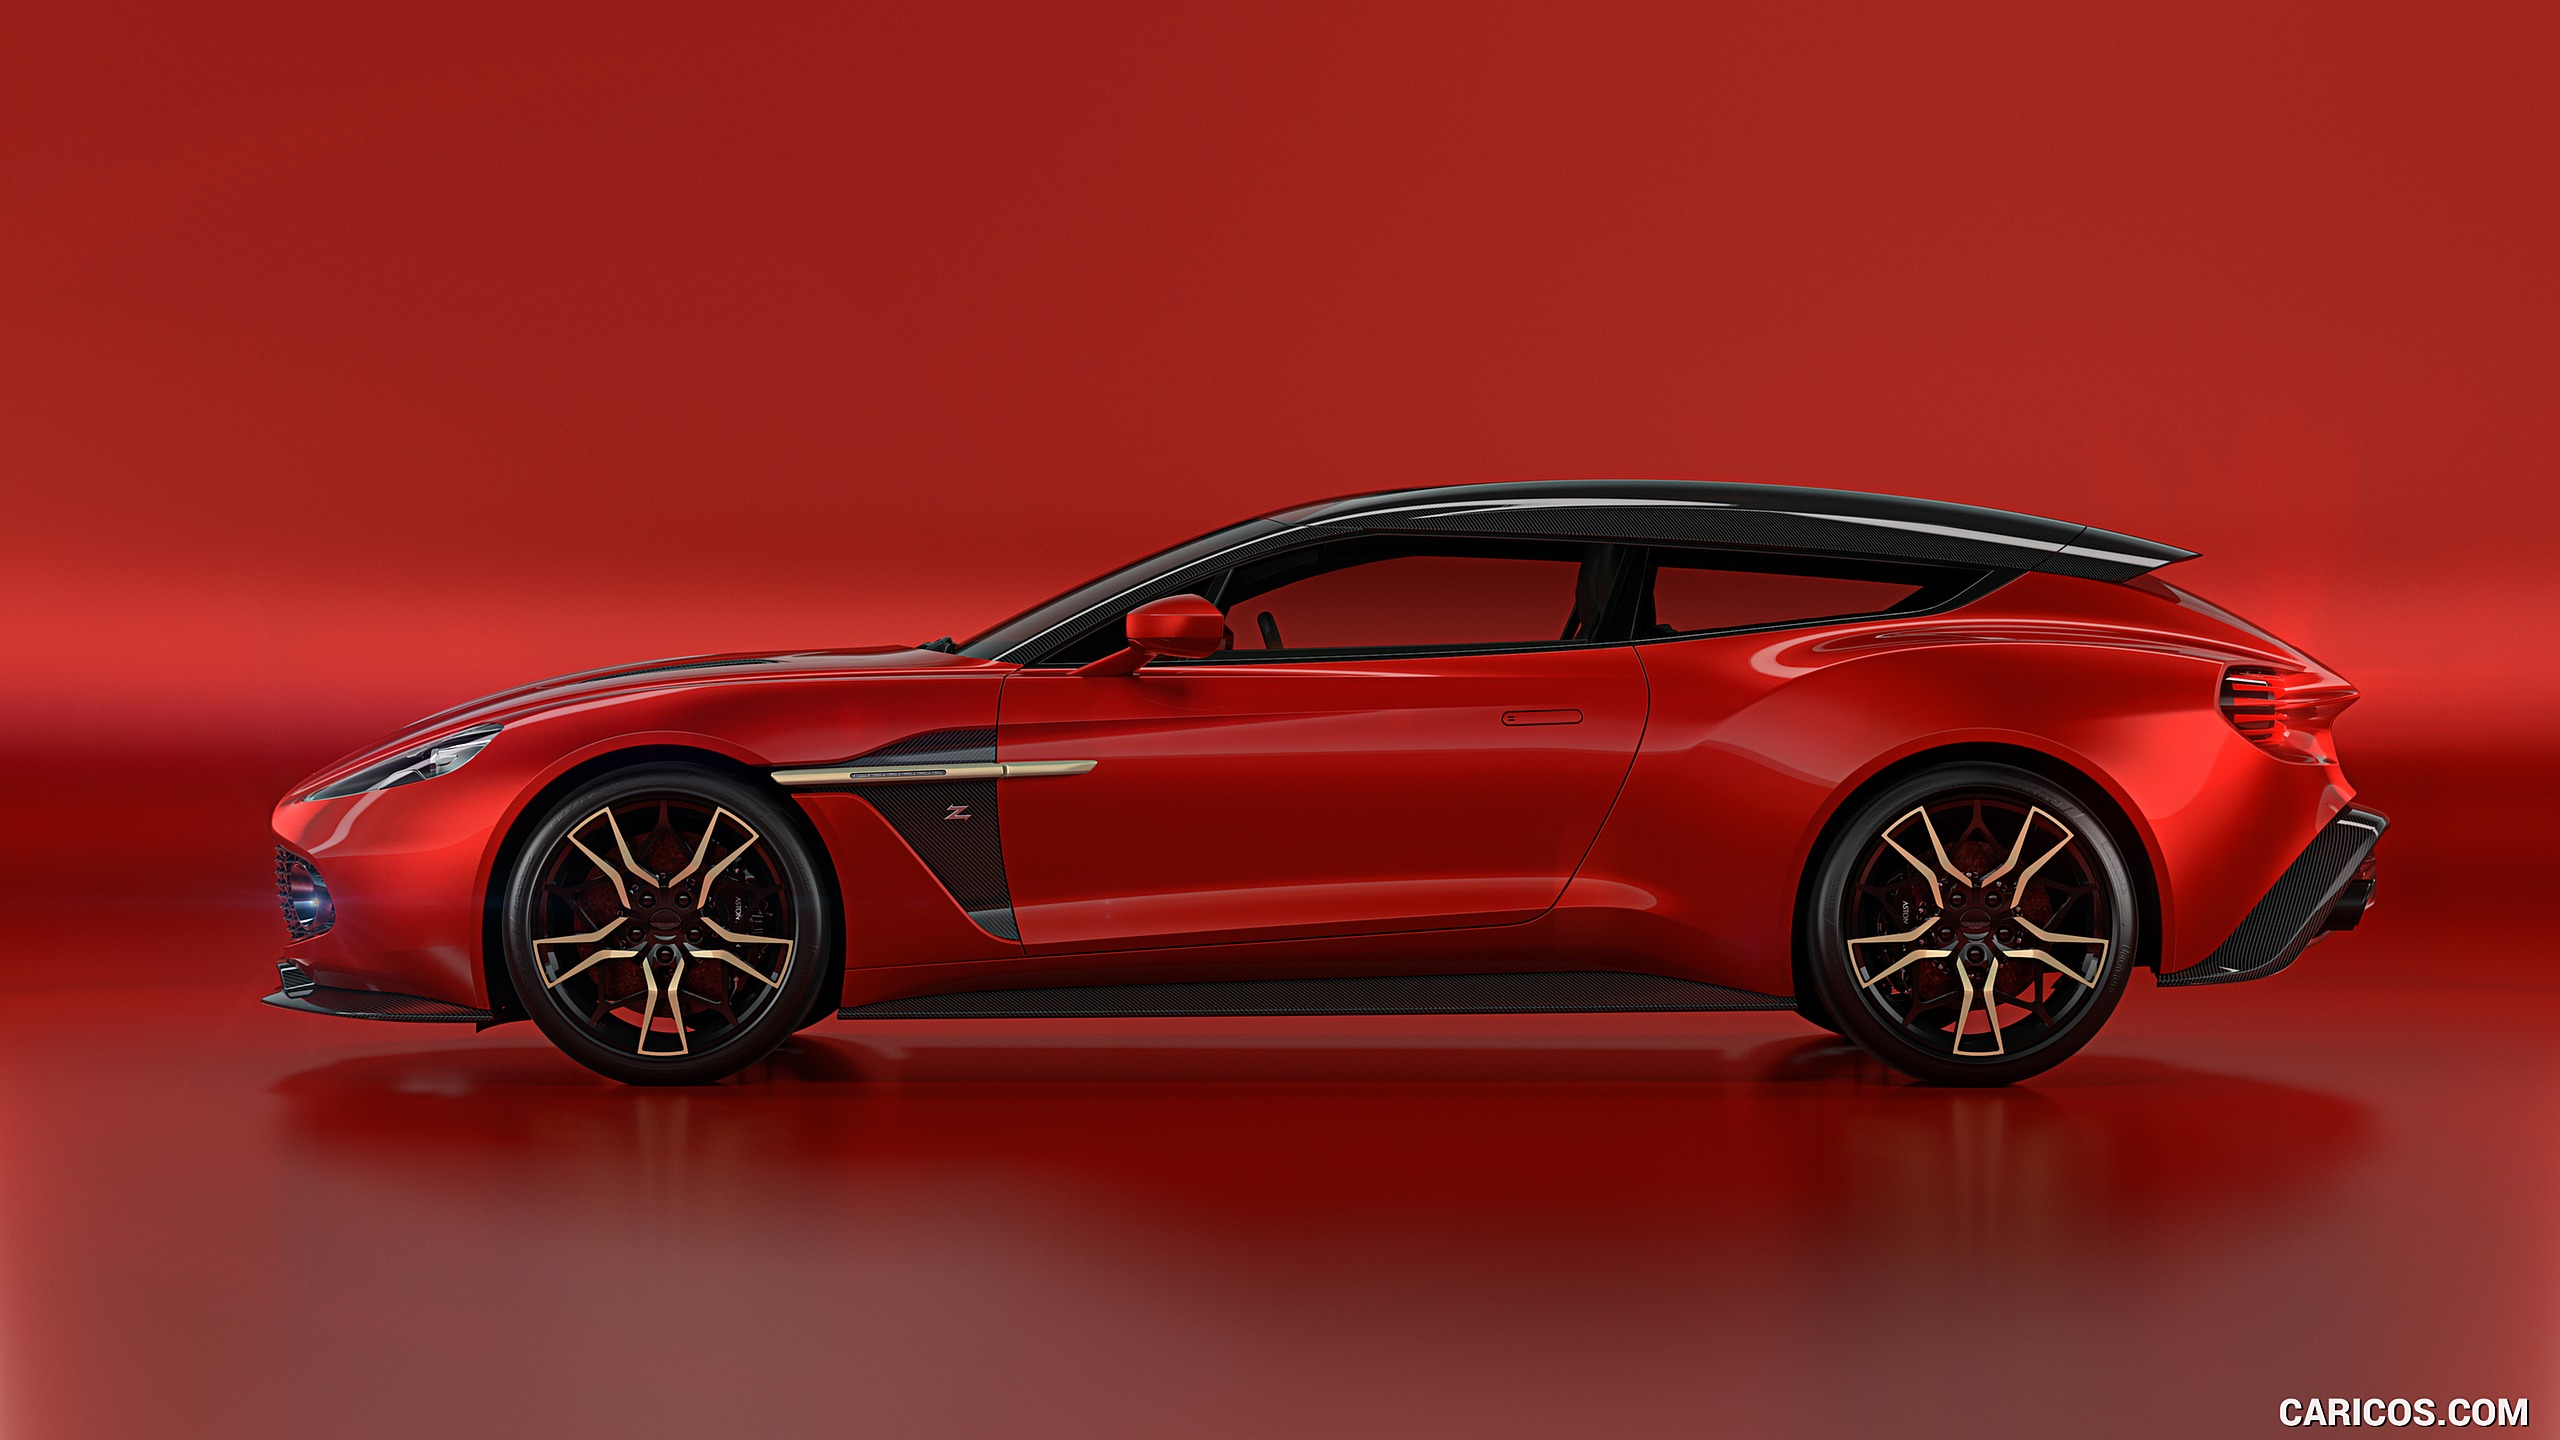 2018 Aston Martin Vanquish Zagato Shooting Brake   Side HD 2560x1440